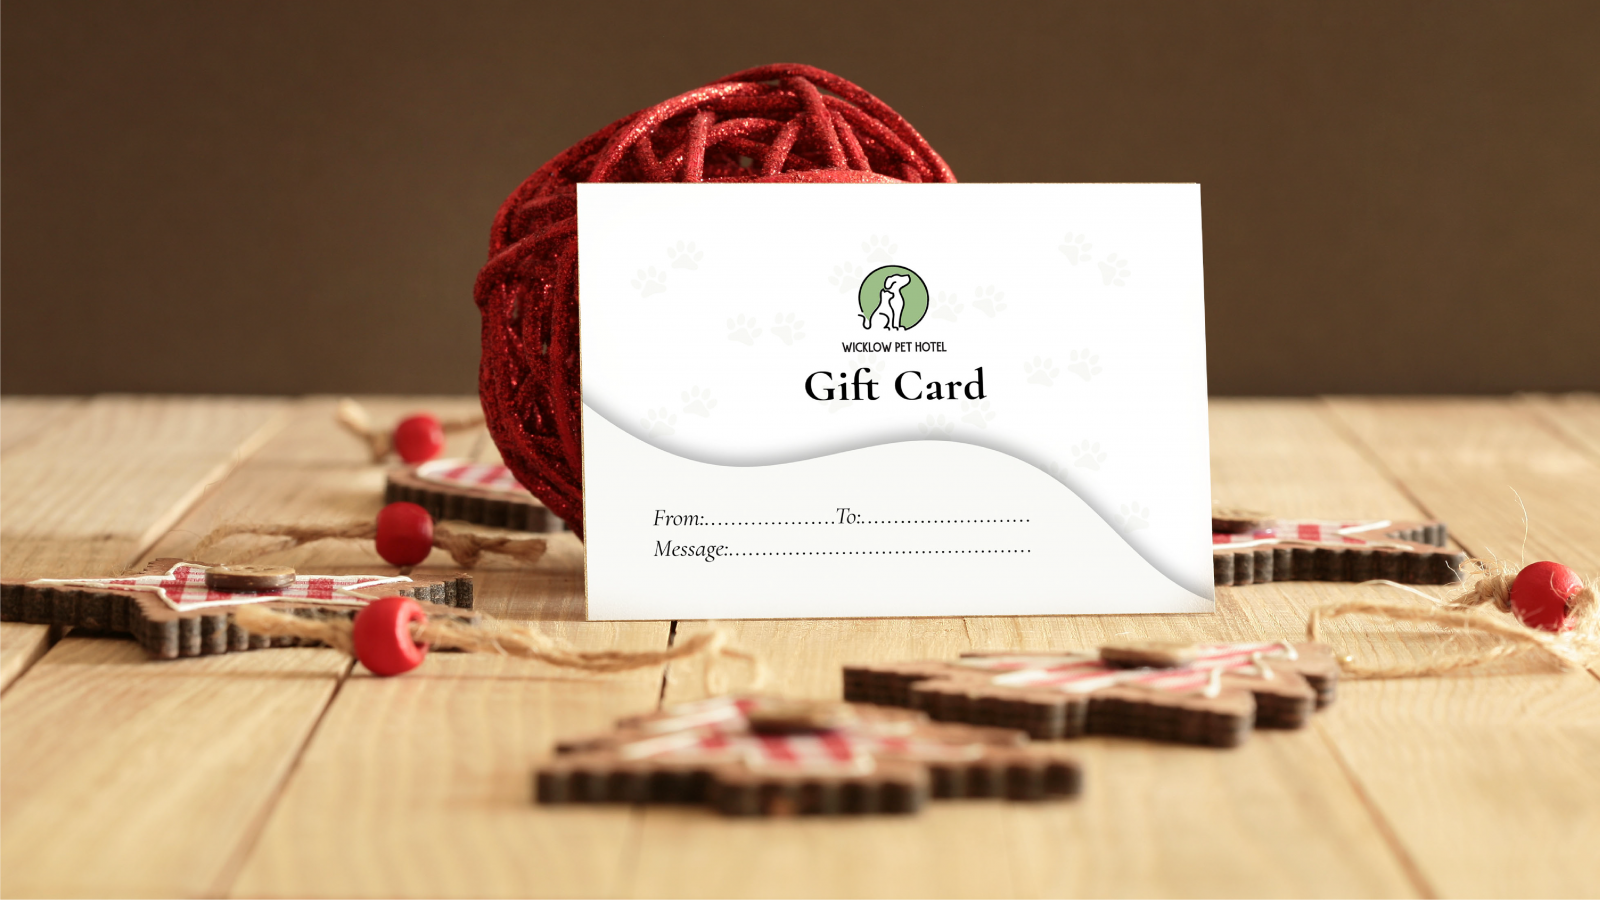 Wicklow_Pet_Hotel_Gift_Card